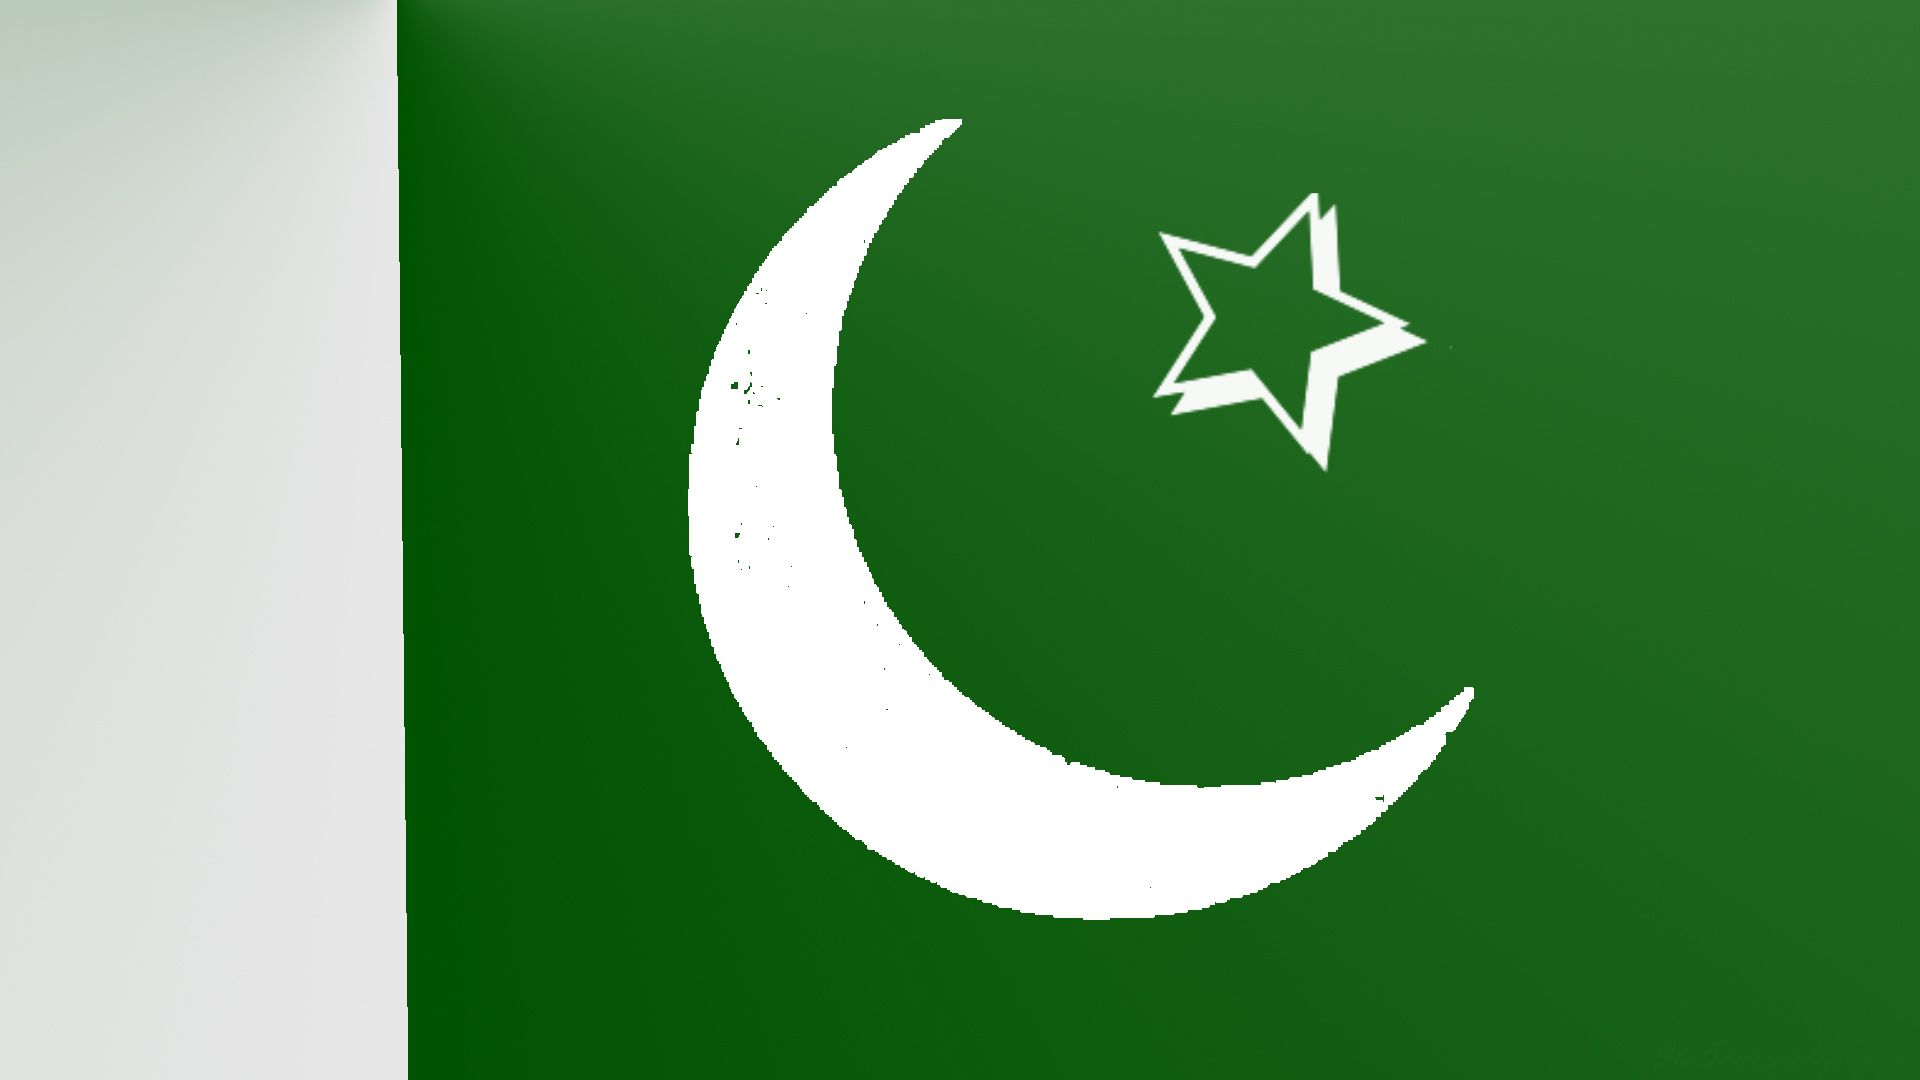 1920x1080 Latest Pics Of Pakistan Flag, Images & wallpapers 2017 |